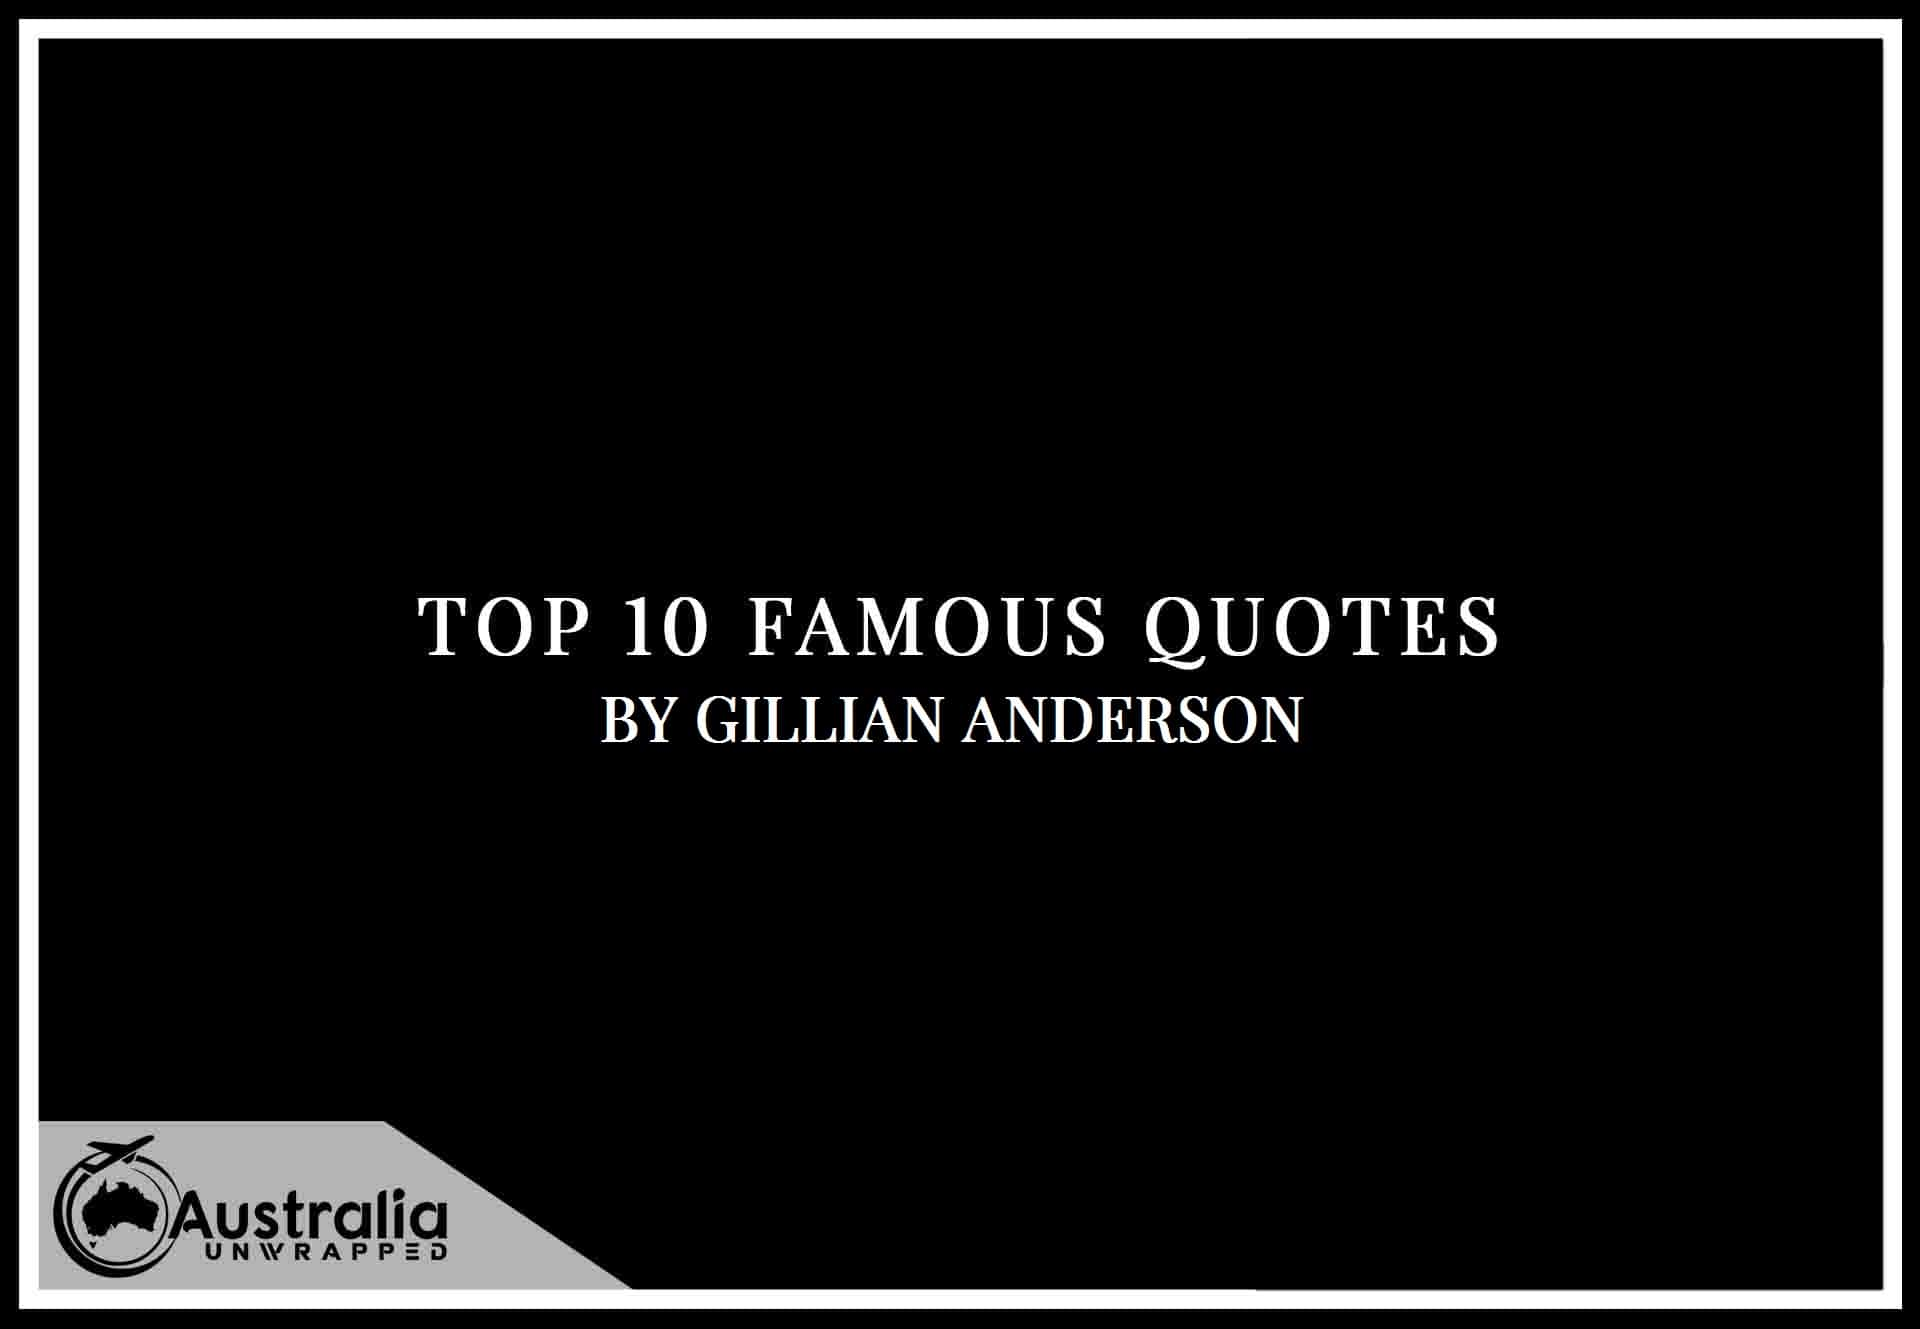 Gillian Anderson's Top 10 Popular and Famous Quotes